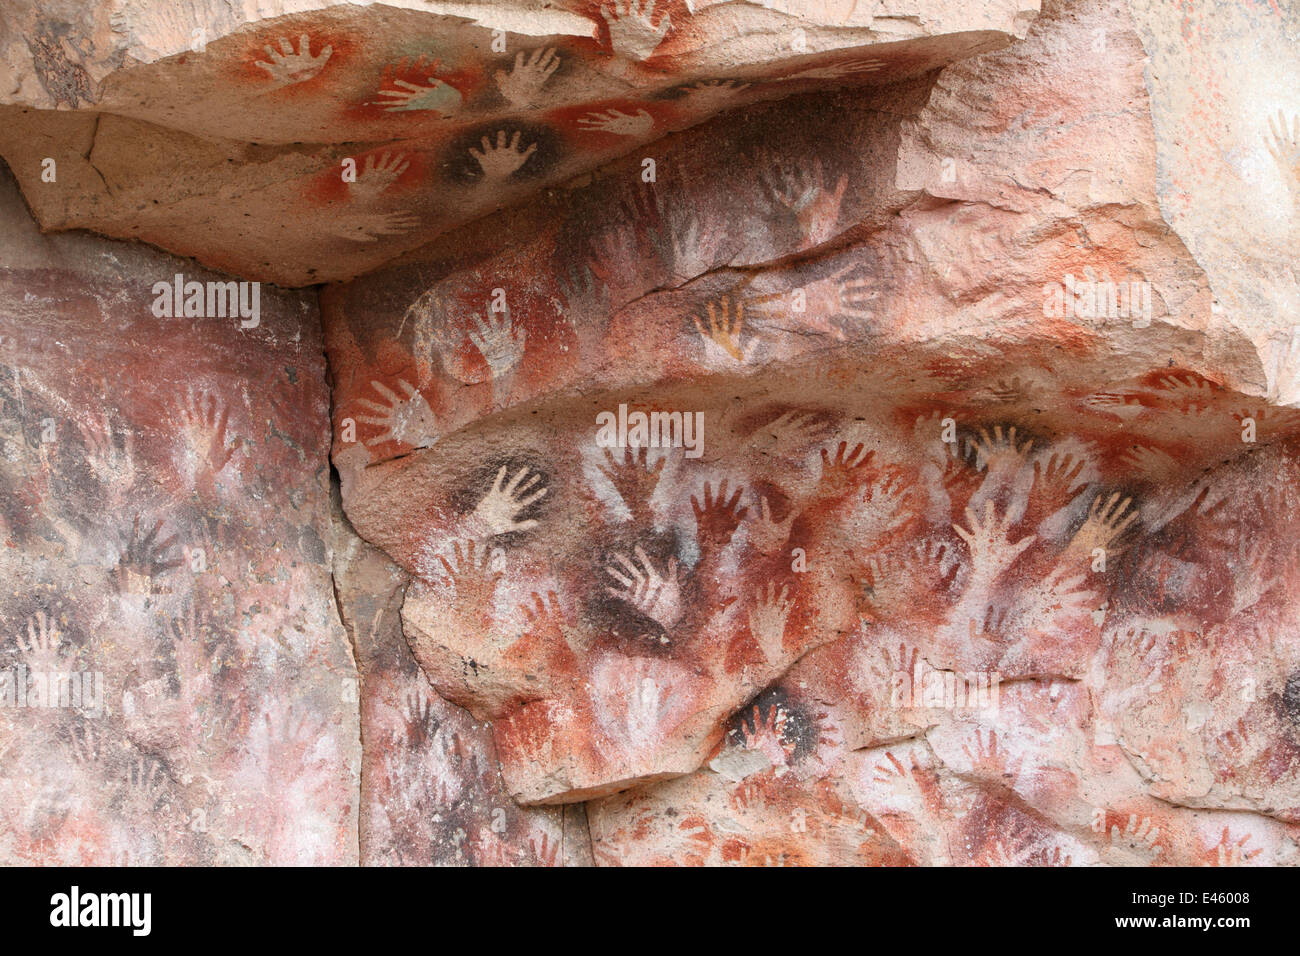 Cave hand paintings, dated to around 550 BC. Cueva de las Manos, Argentina, March 2010. - Stock Image